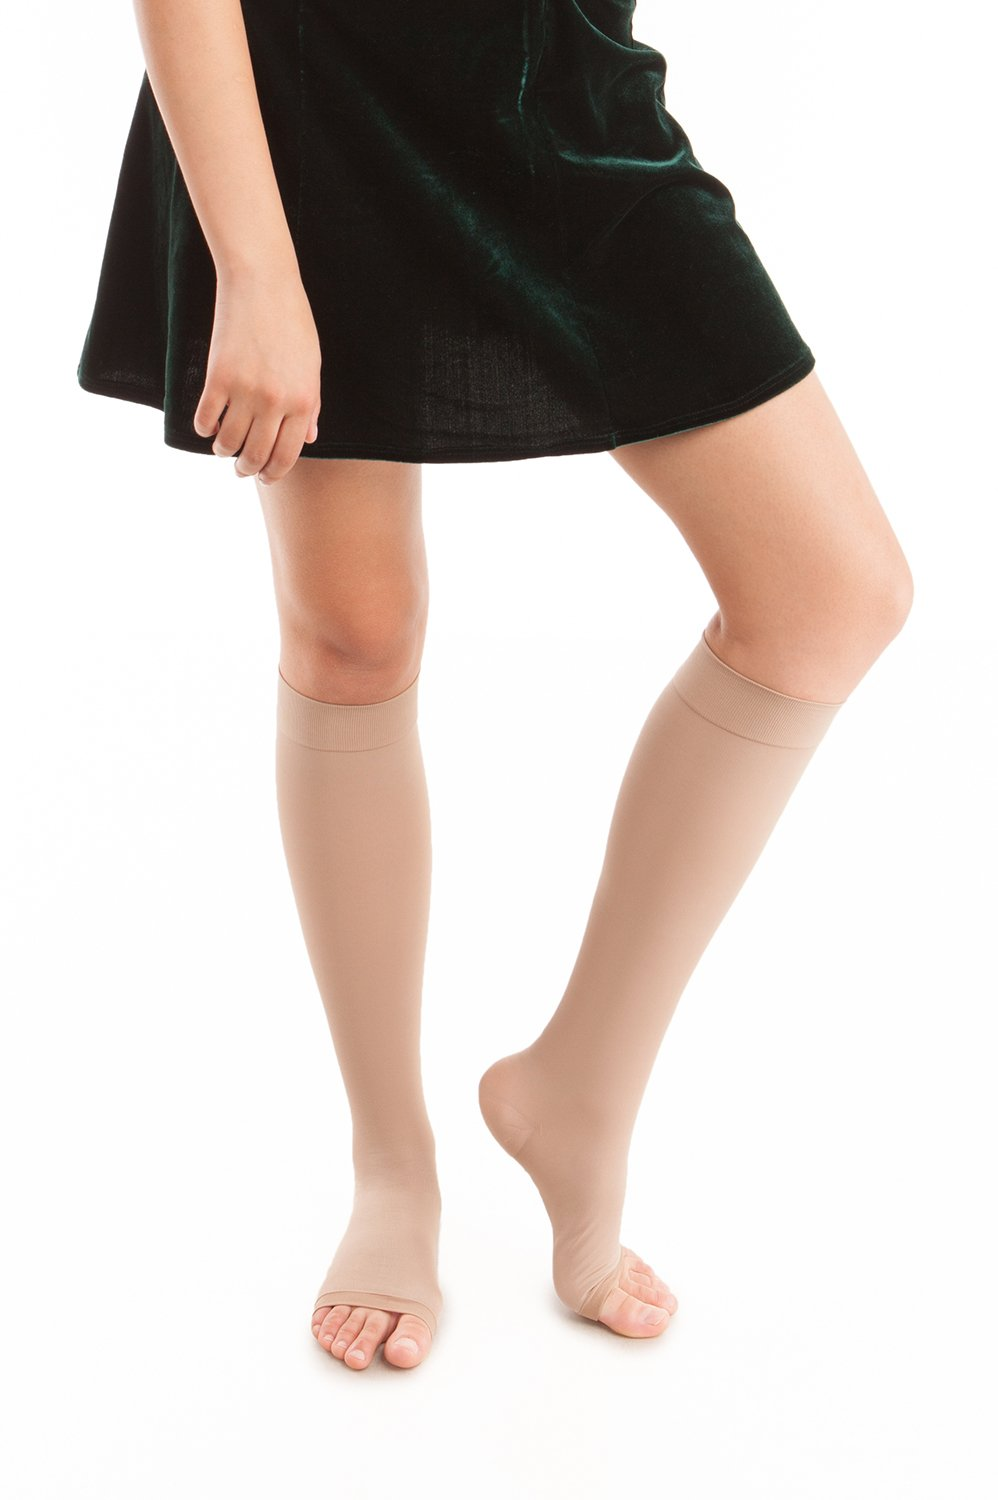 Microfiber Open Toe Knee Highs - Graduated Strong Compression - 25 to 35 mmHg (H-304(O))